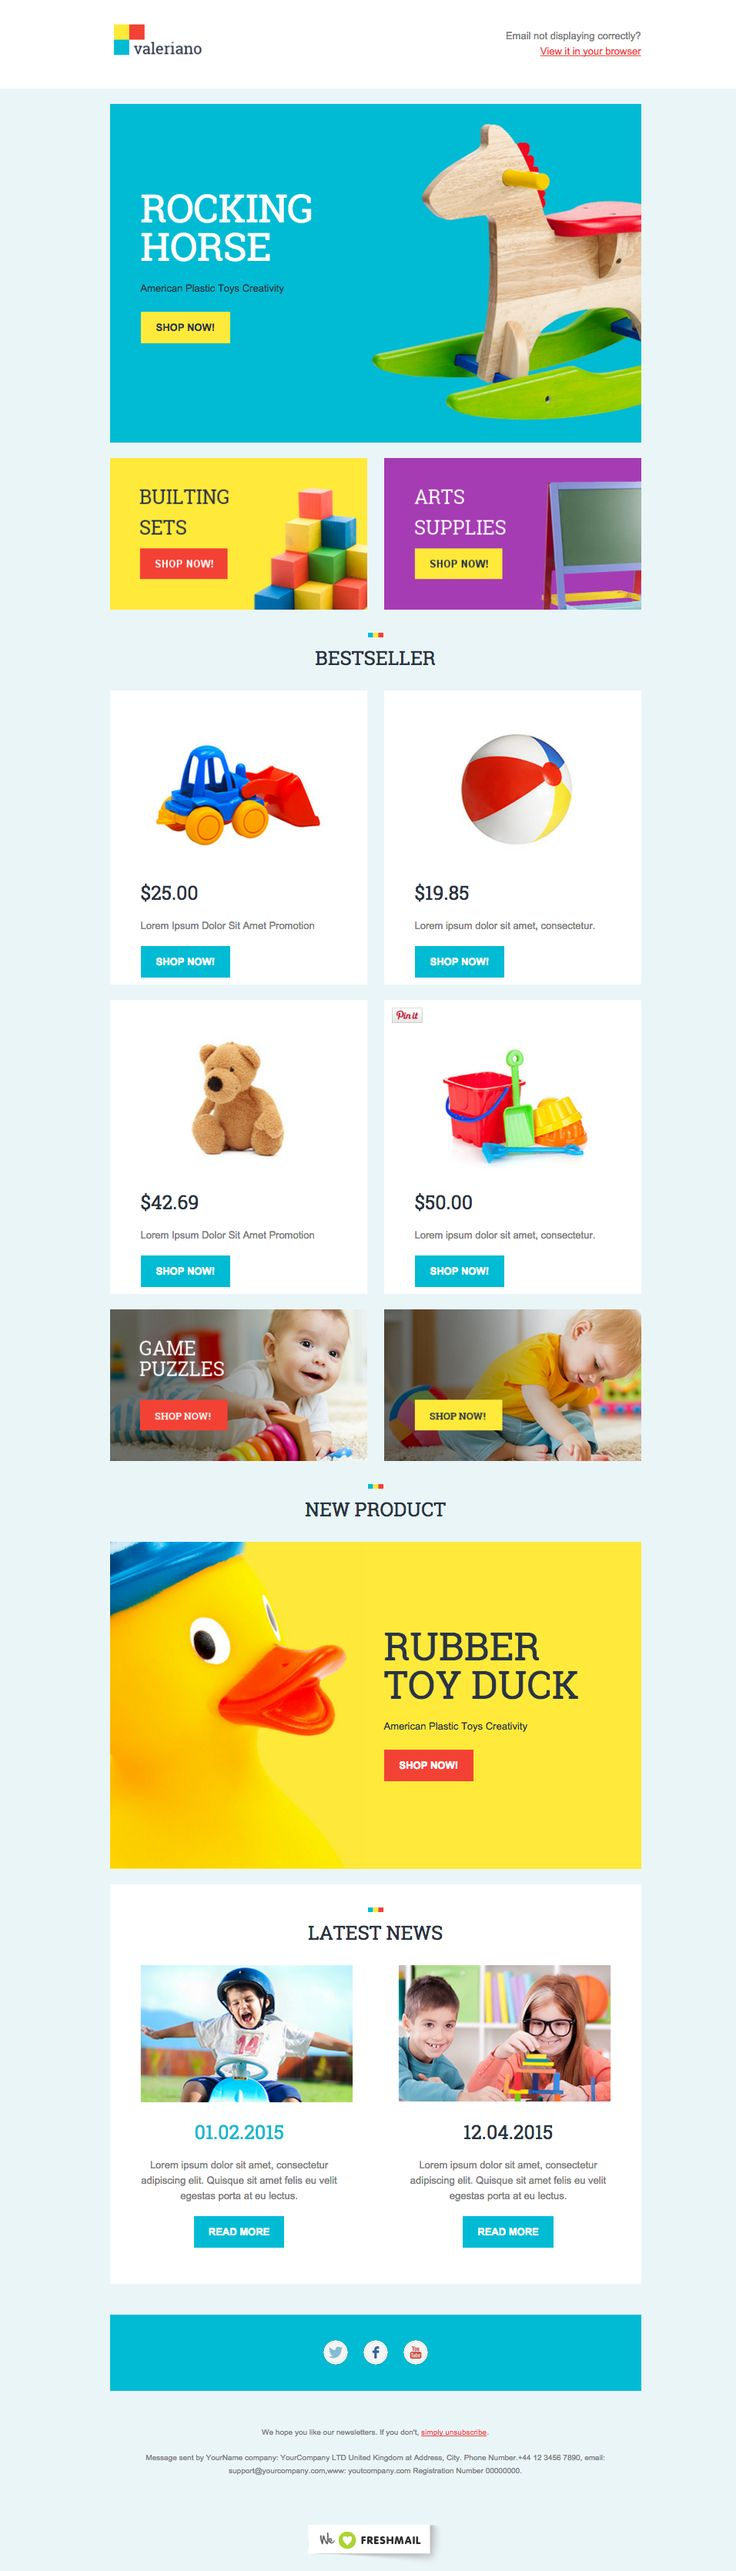 kids children newsletter template design ideas examples for your inspiration valeriano template created by freshmail - Newsletter Design Ideas